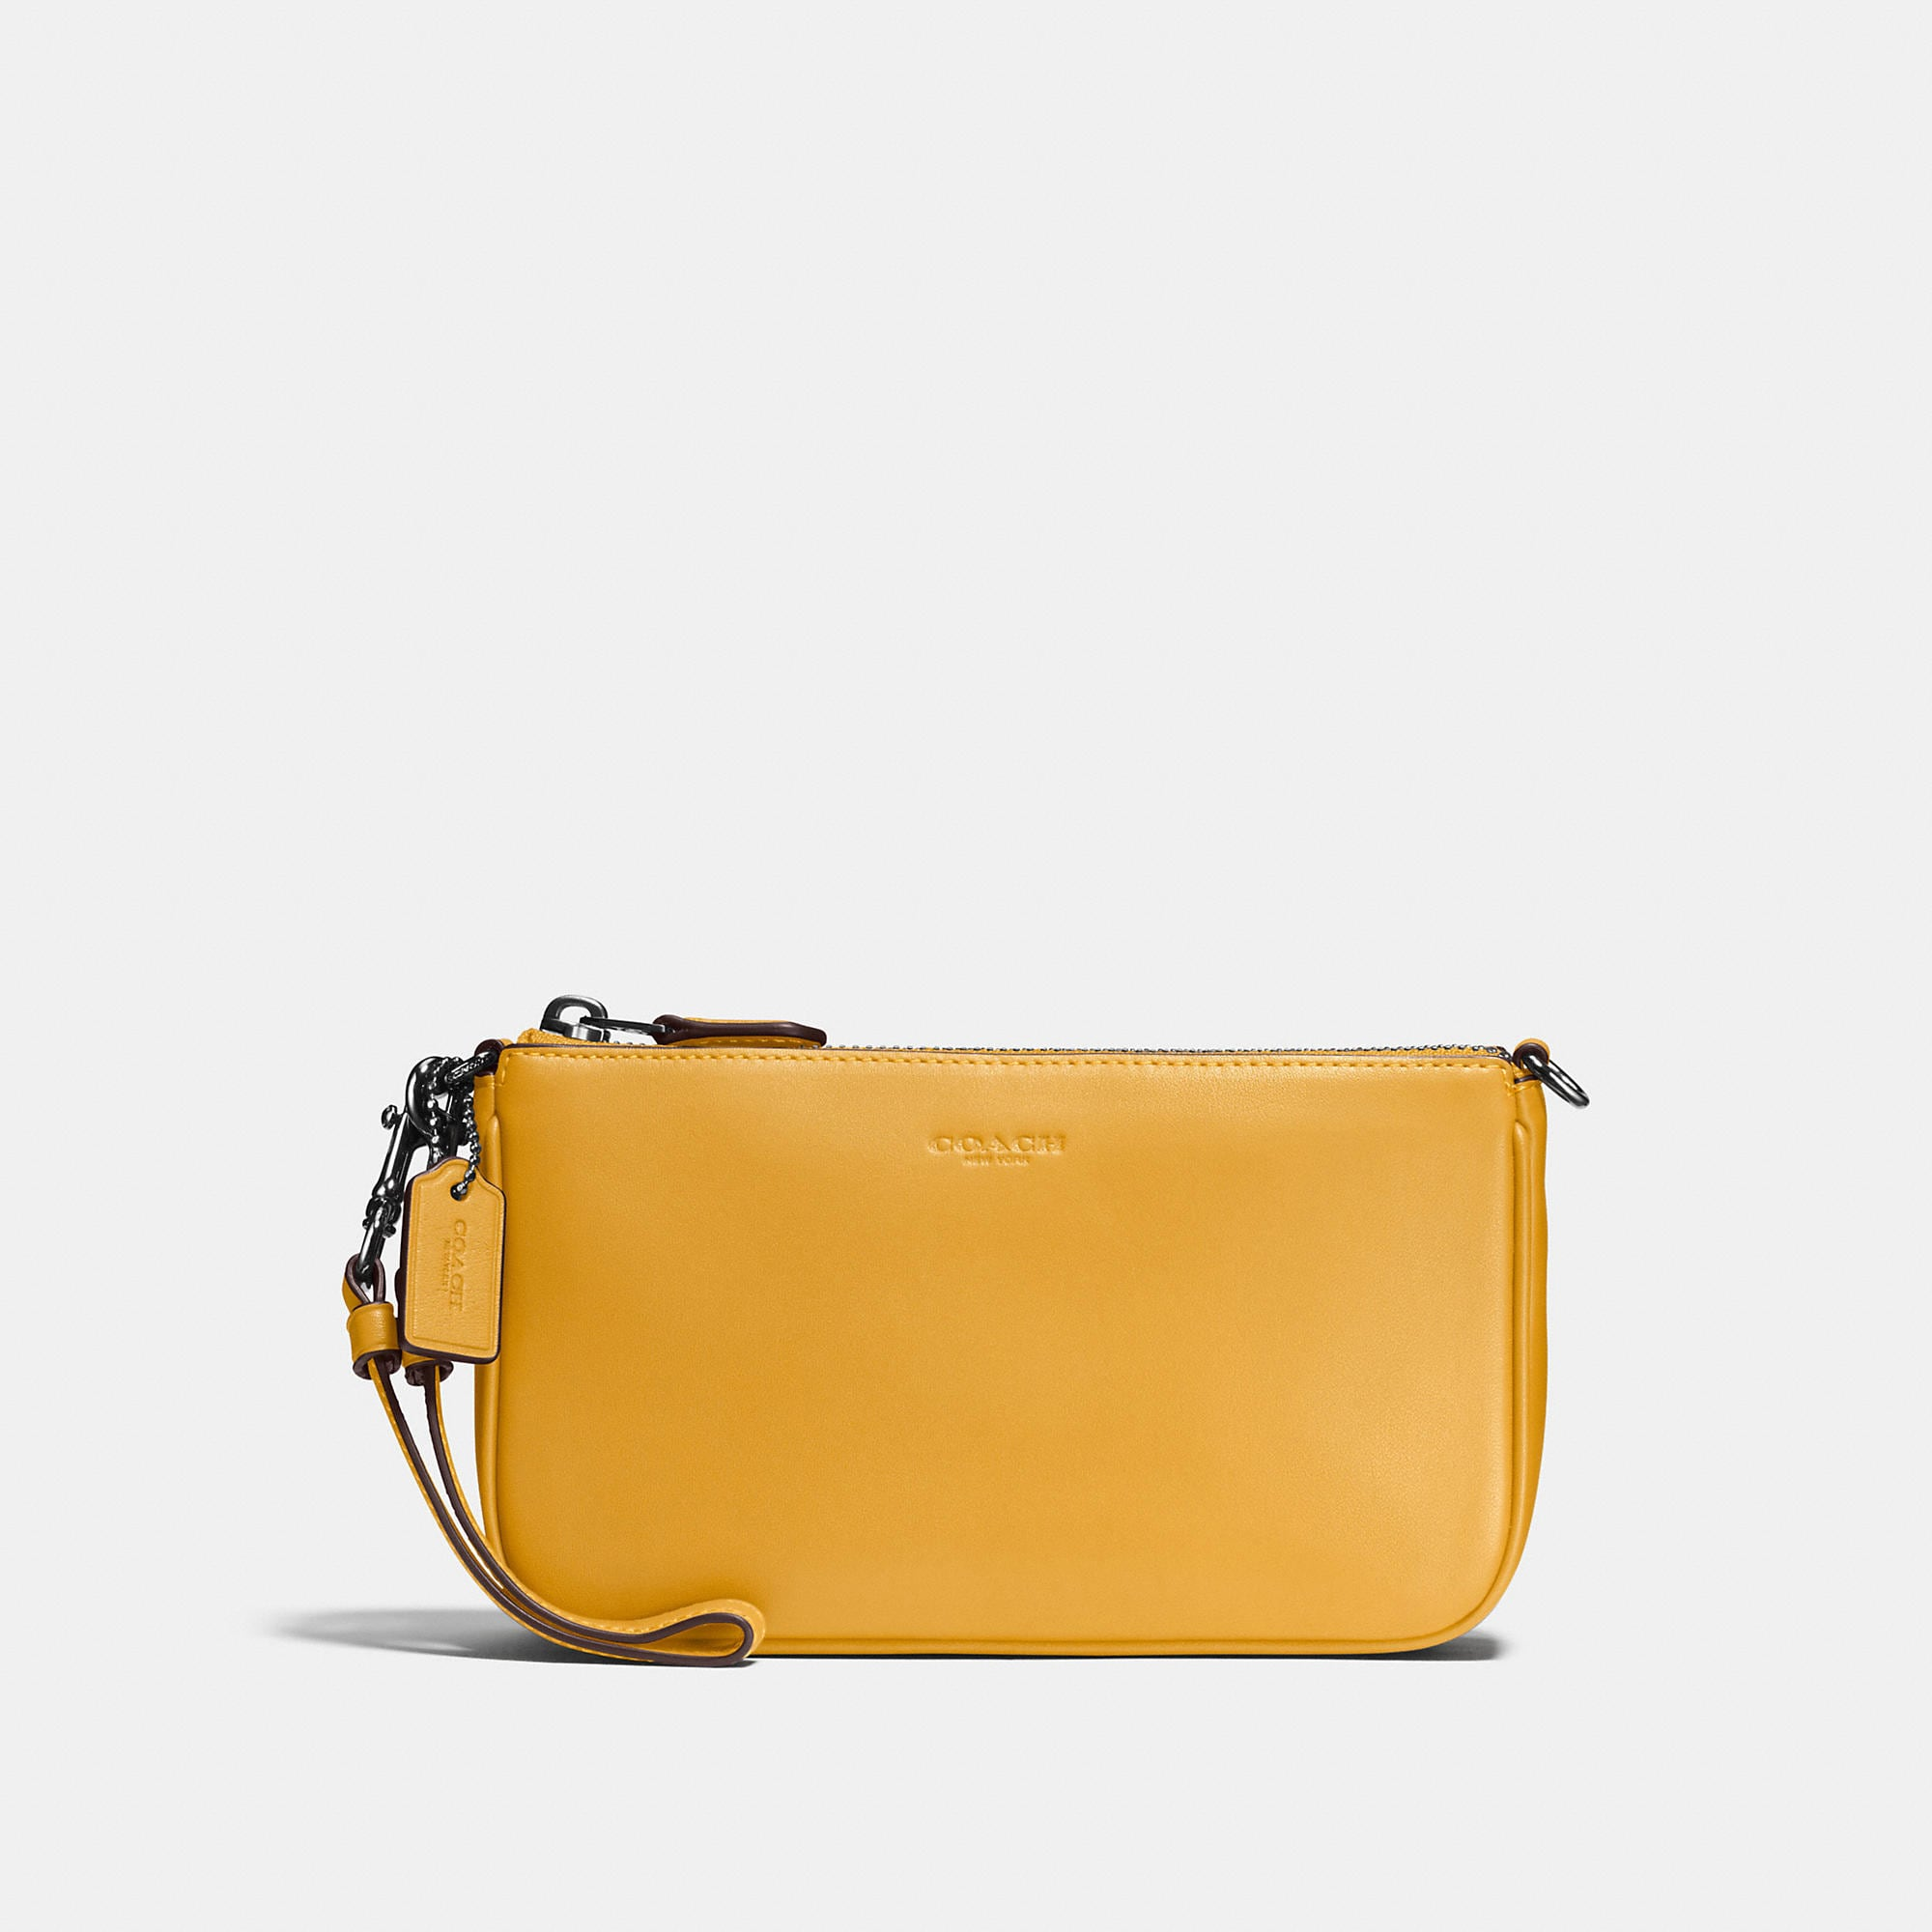 Coach Nolita Wristlet 19 In Glovetanned Leather